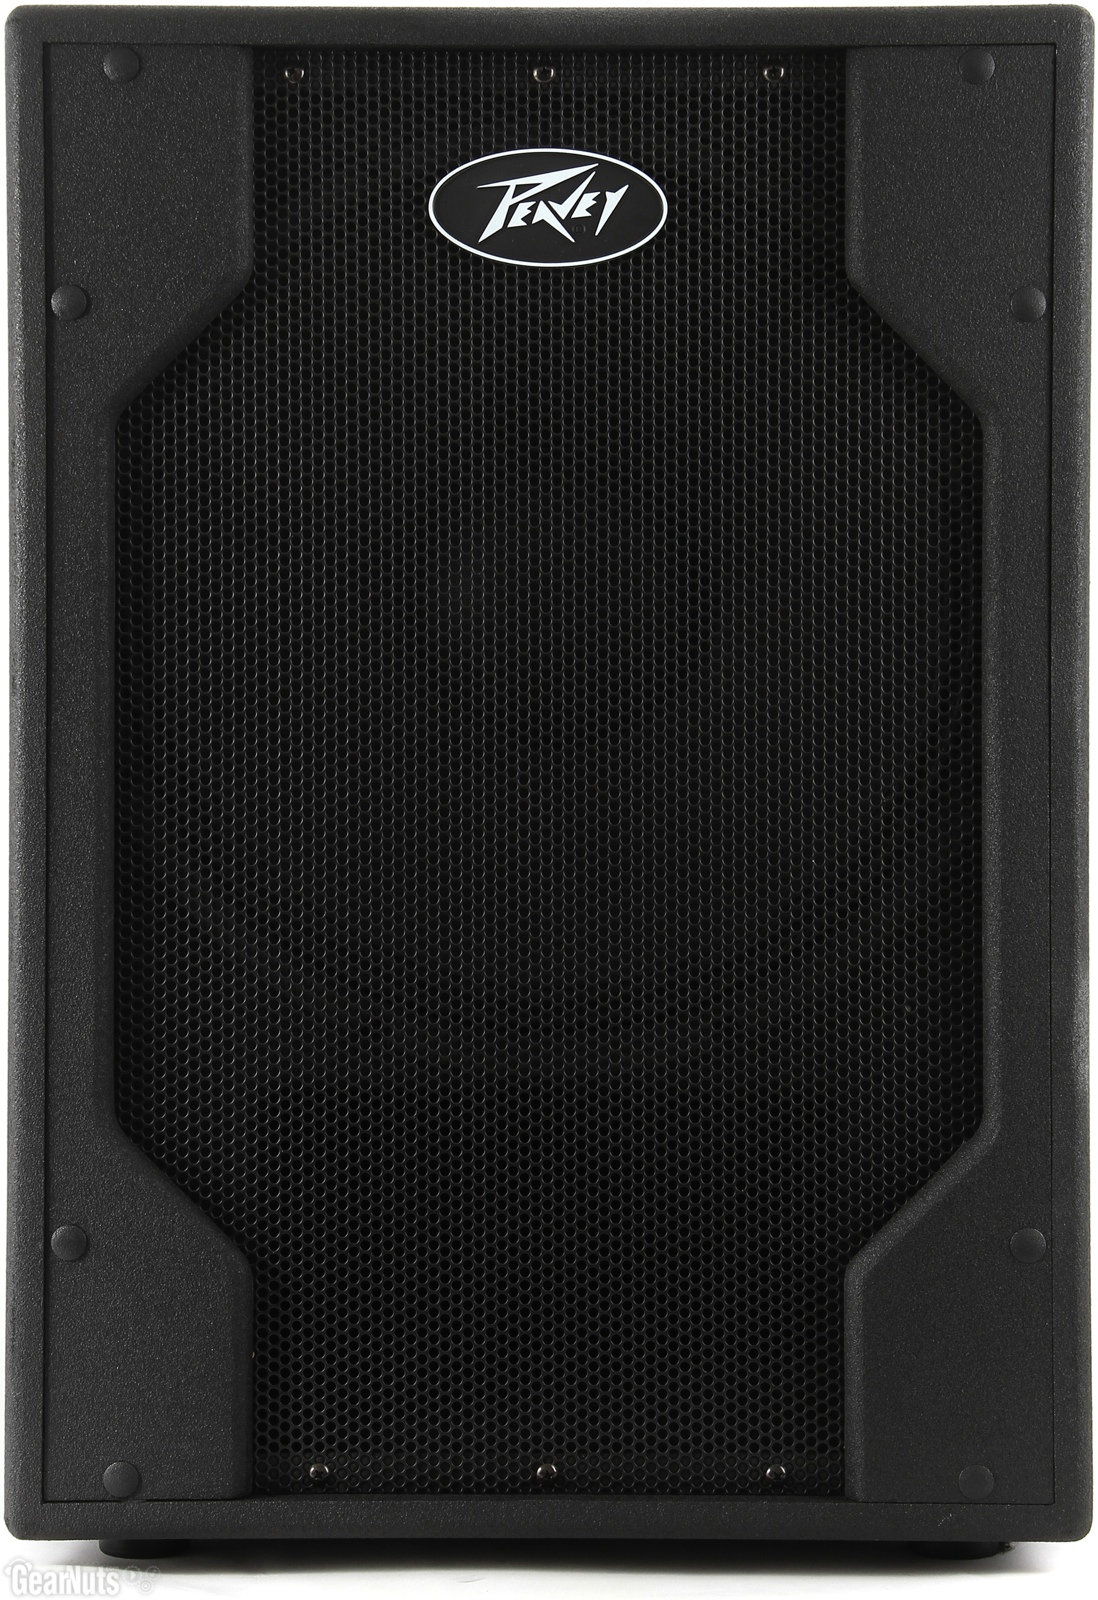 Peavey Pvxp Sub 120us 15 Quot Powered Subwoofer System W